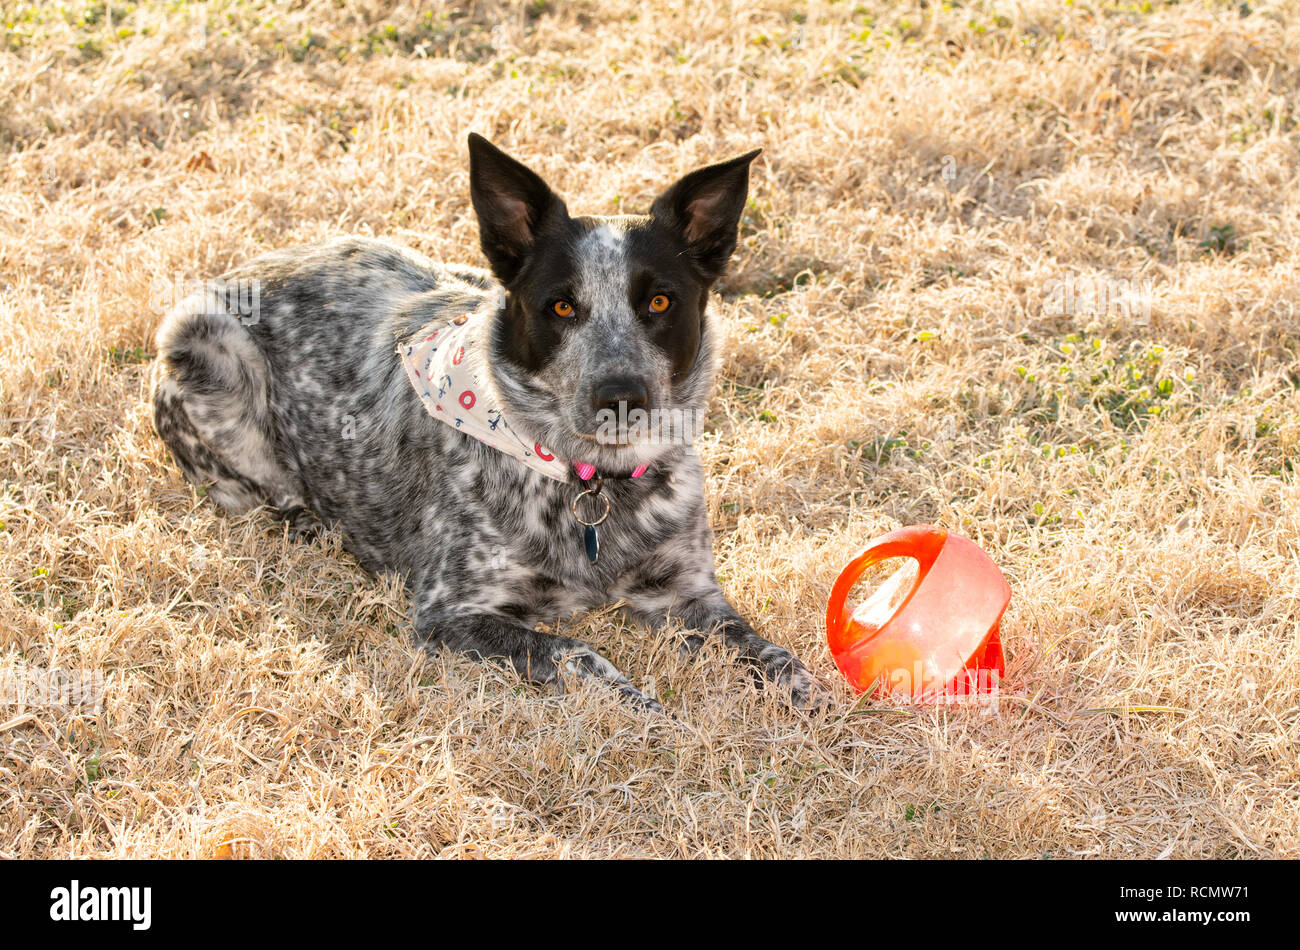 Black and white spotted dog lying in frosty morning grass next to her ball, waiting for you to come and play with her - Stock Image